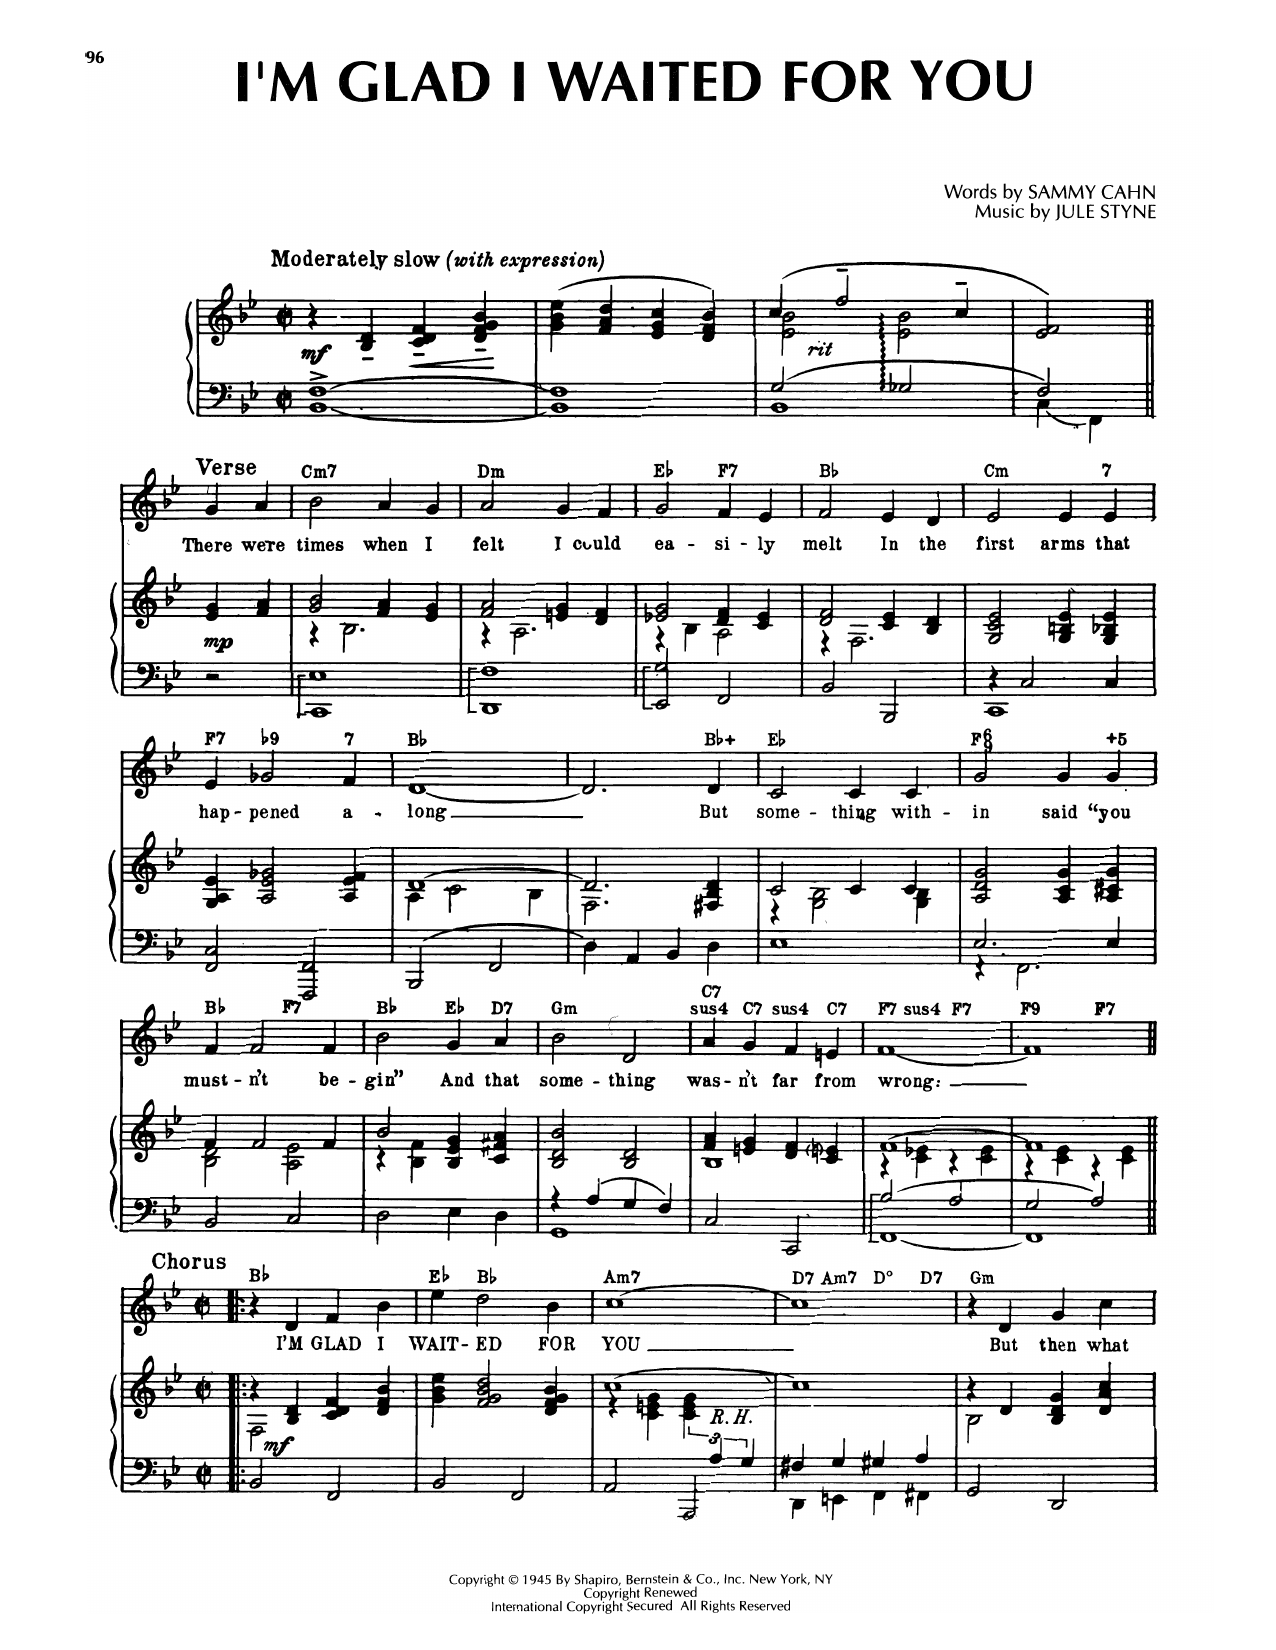 Sammy Cahn & Jule Styne I'm Glad I Waited For You (from Tars And Spars) sheet music notes printable PDF score